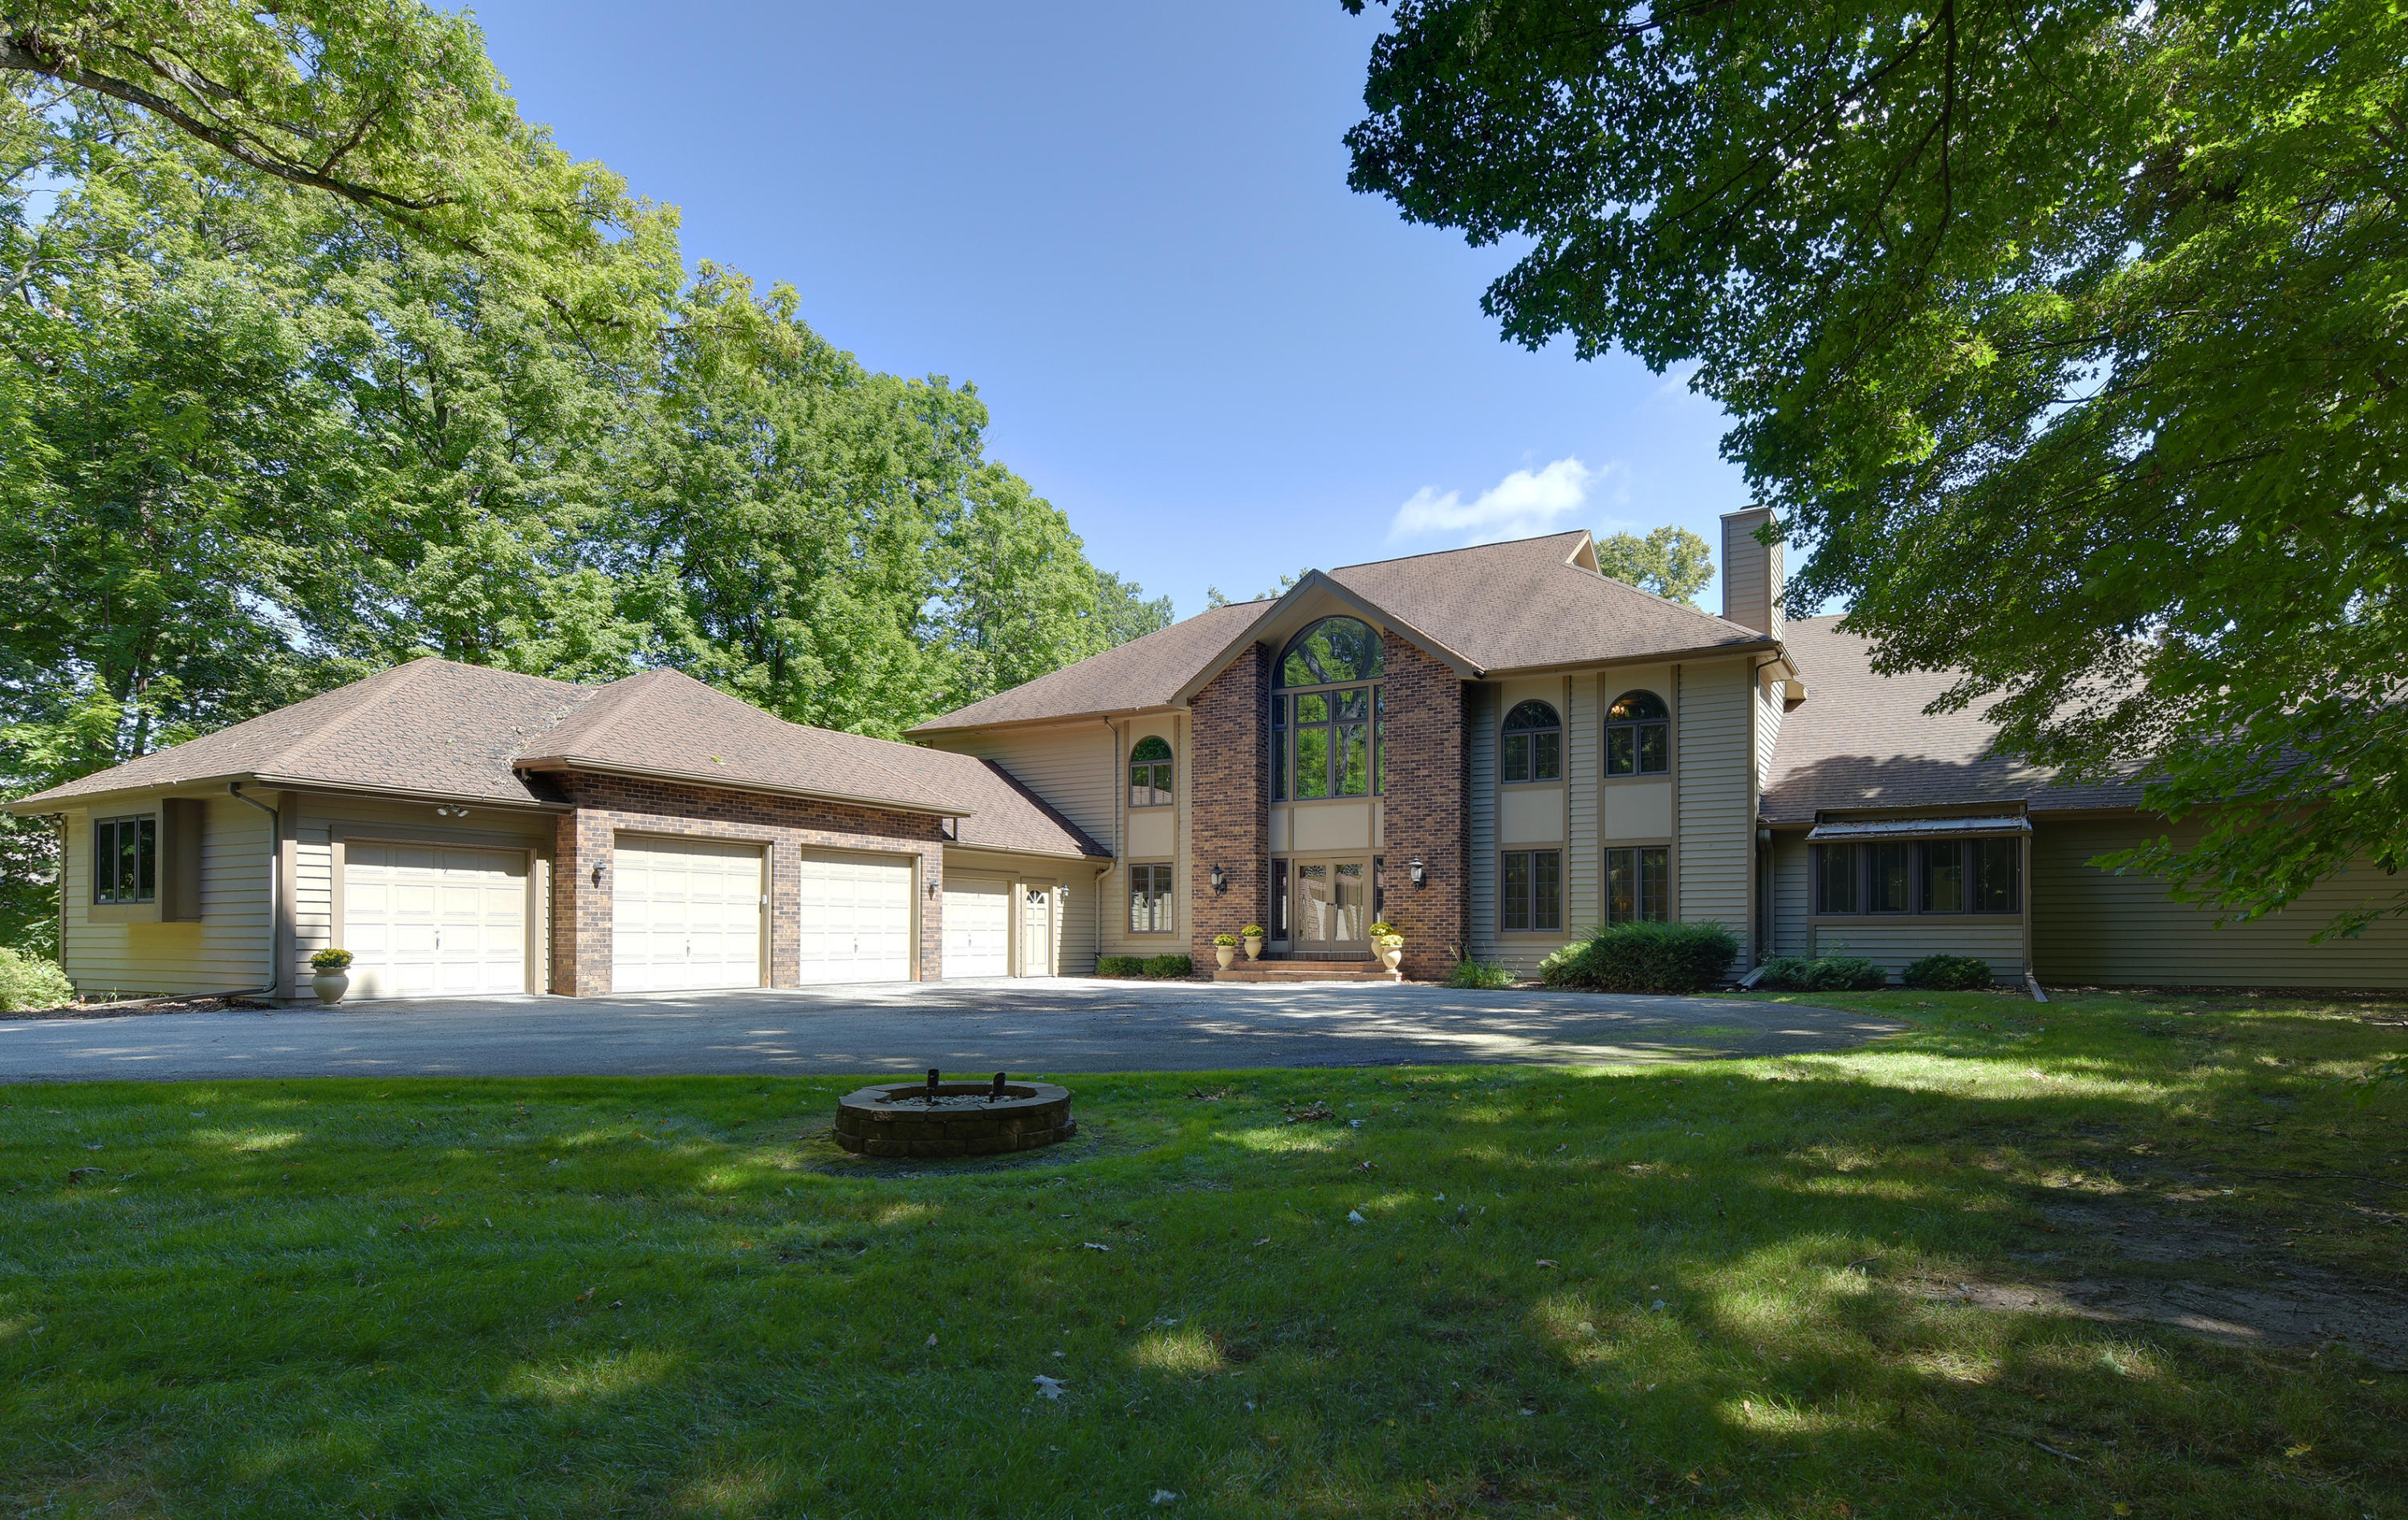 4580 Hewitts Point Rd, Oconomowoc Lake, Wisconsin 53066, 4 Bedrooms Bedrooms, 17 Rooms Rooms,5 BathroomsBathrooms,Single-Family,For Sale,Hewitts Point Rd,1656820